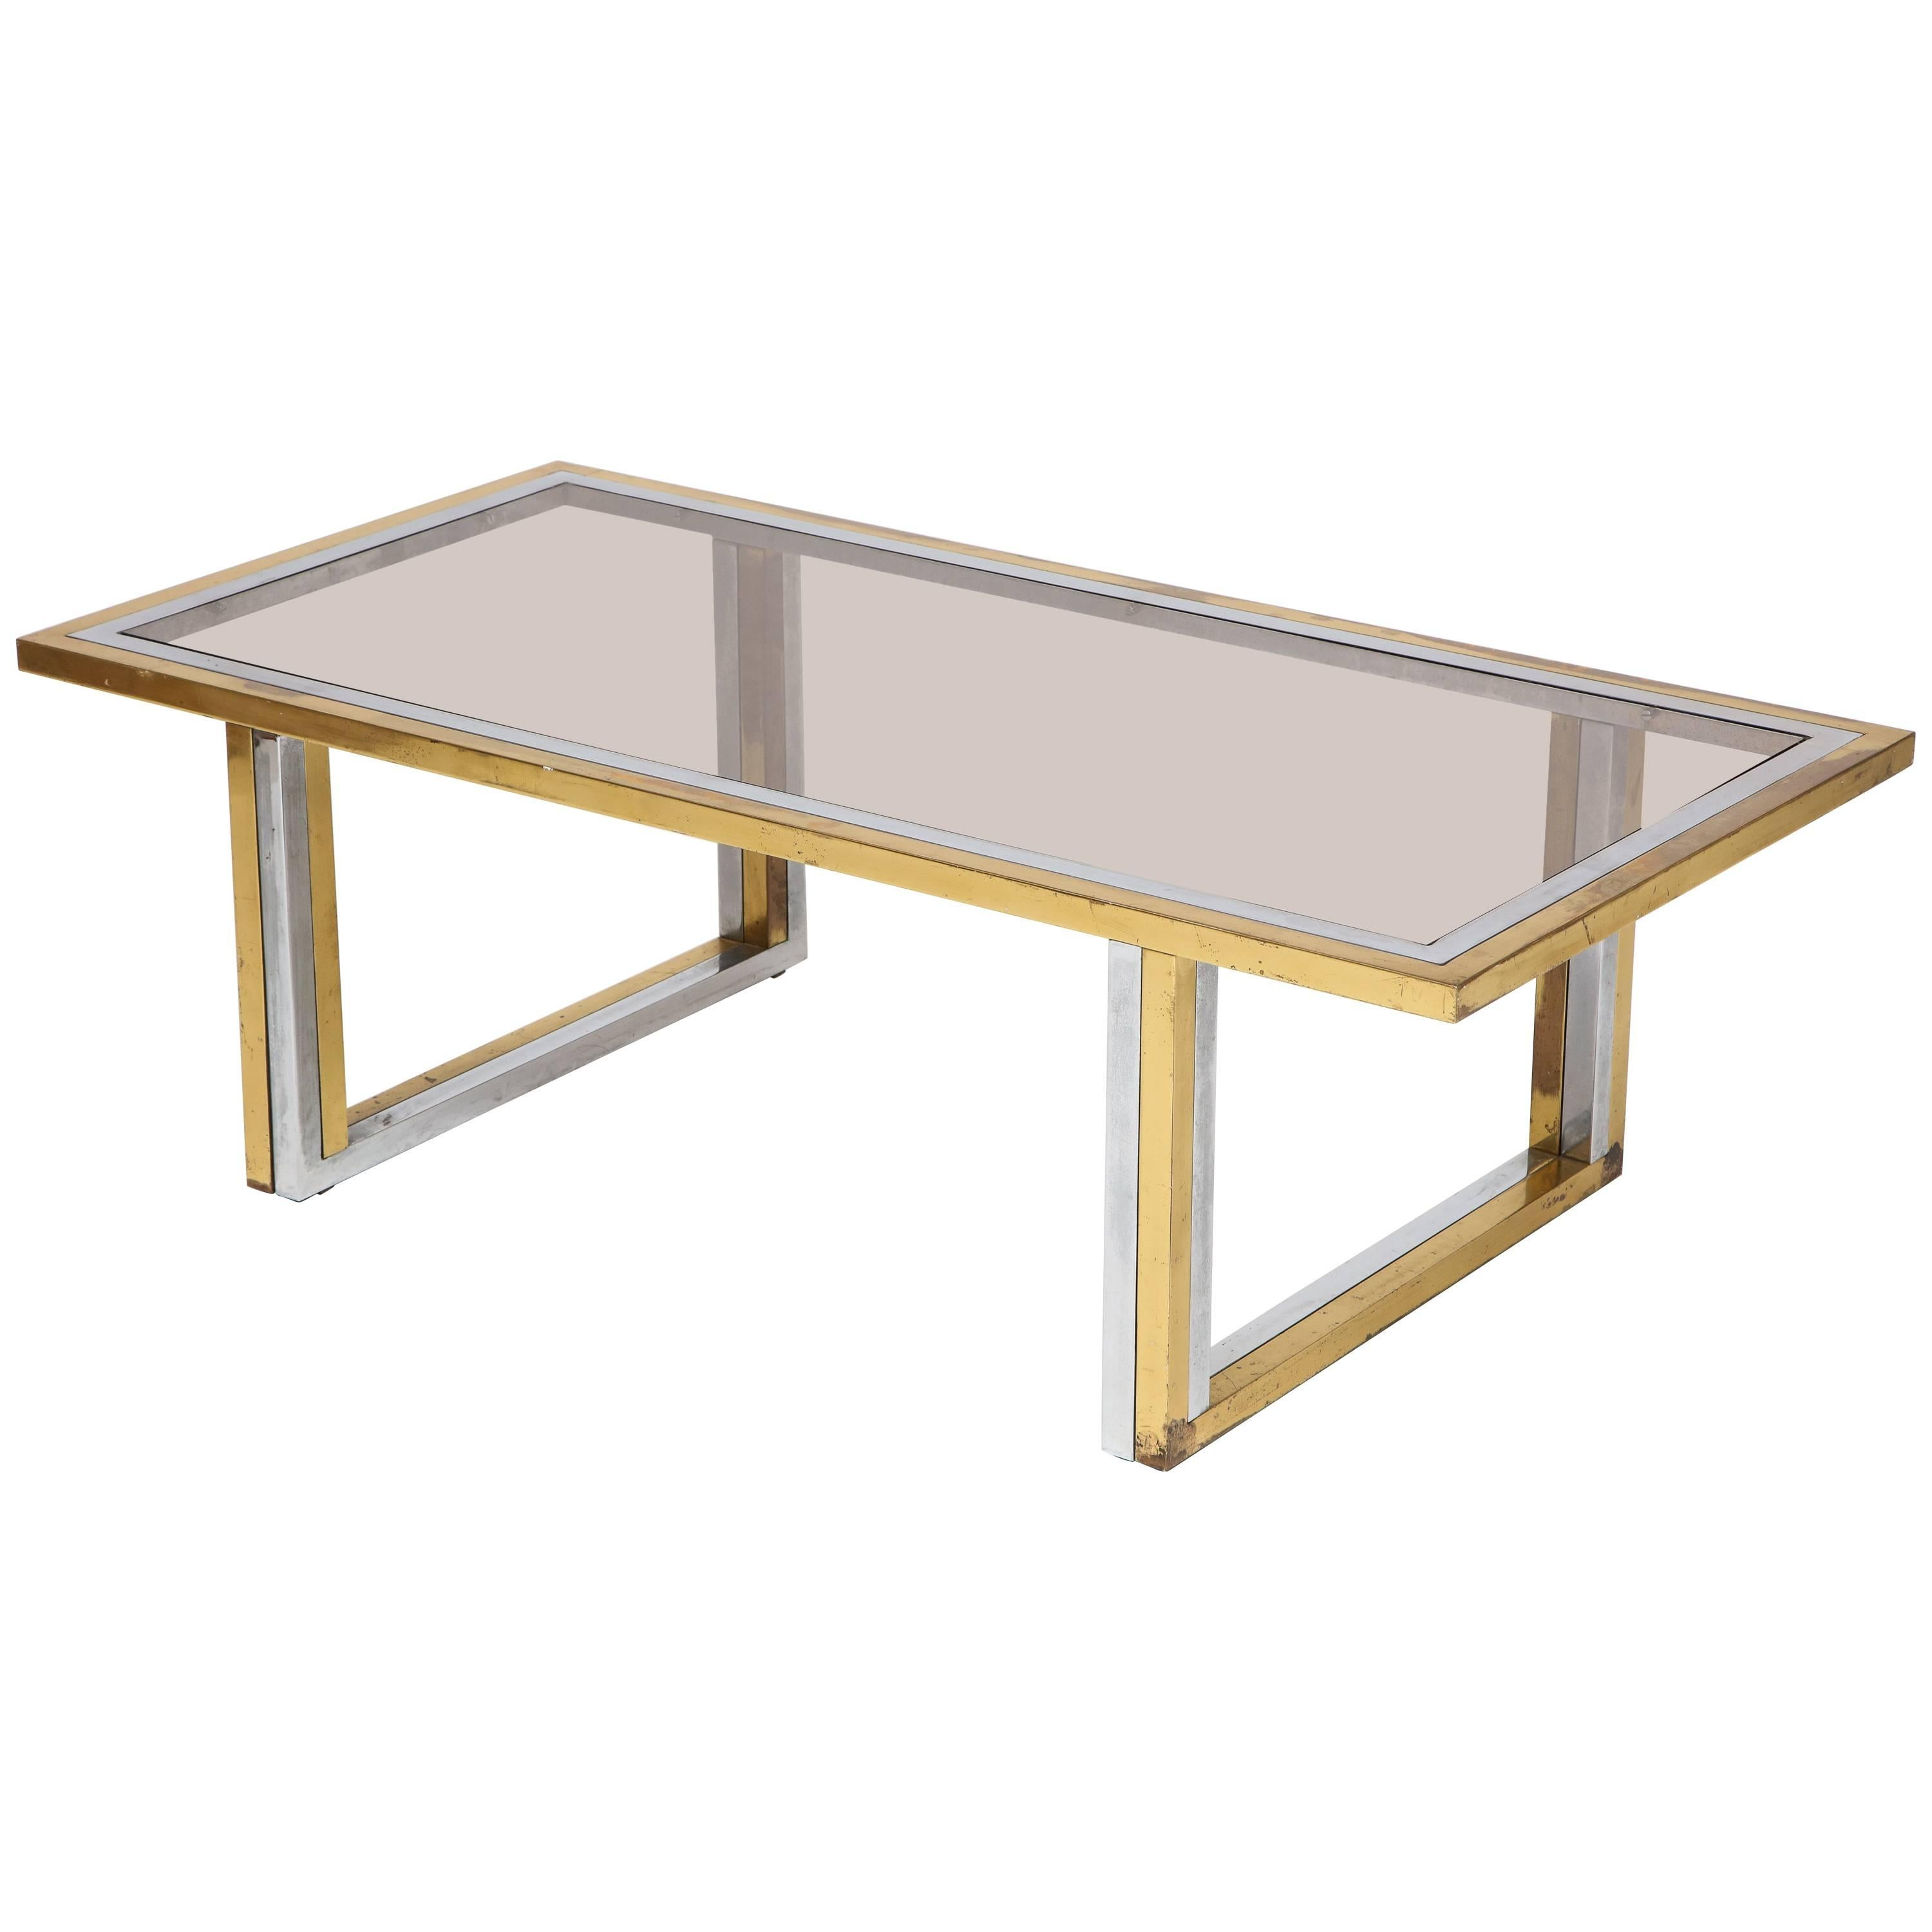 Romeo Rega Brass and Chrome Coffee Table, 1970s, Italy